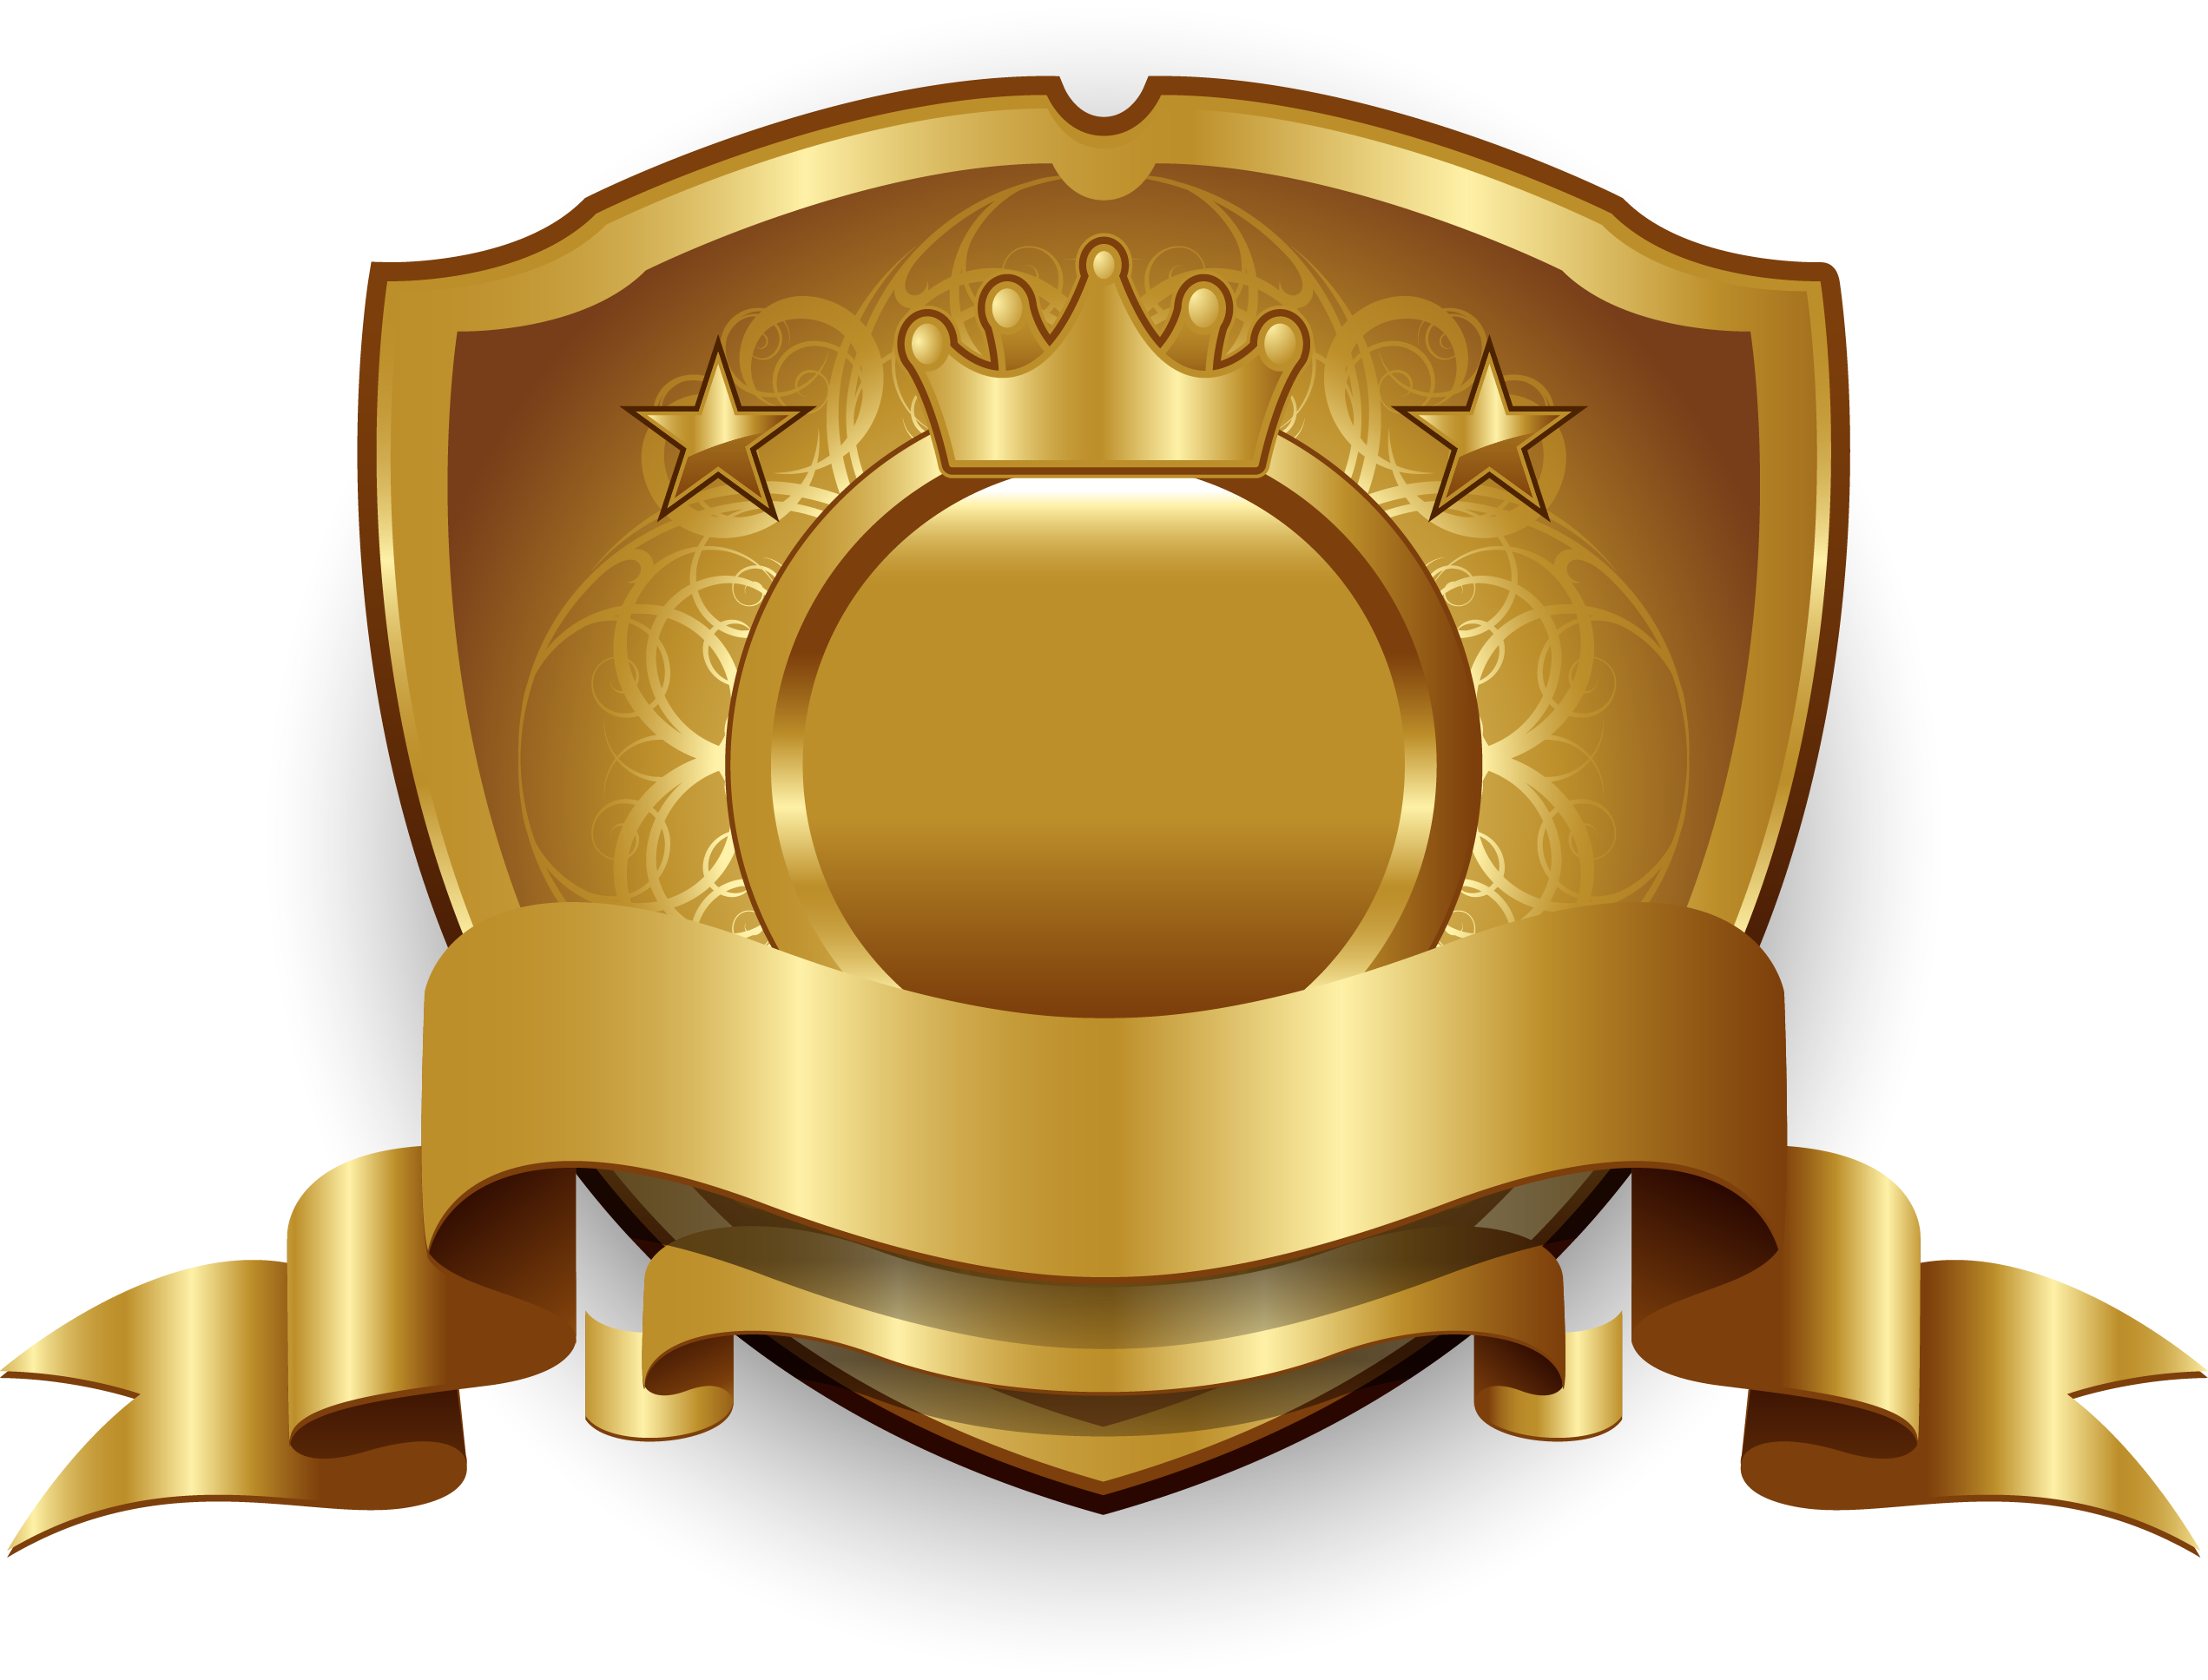 Gold golden label badge. Clipart shield trophy